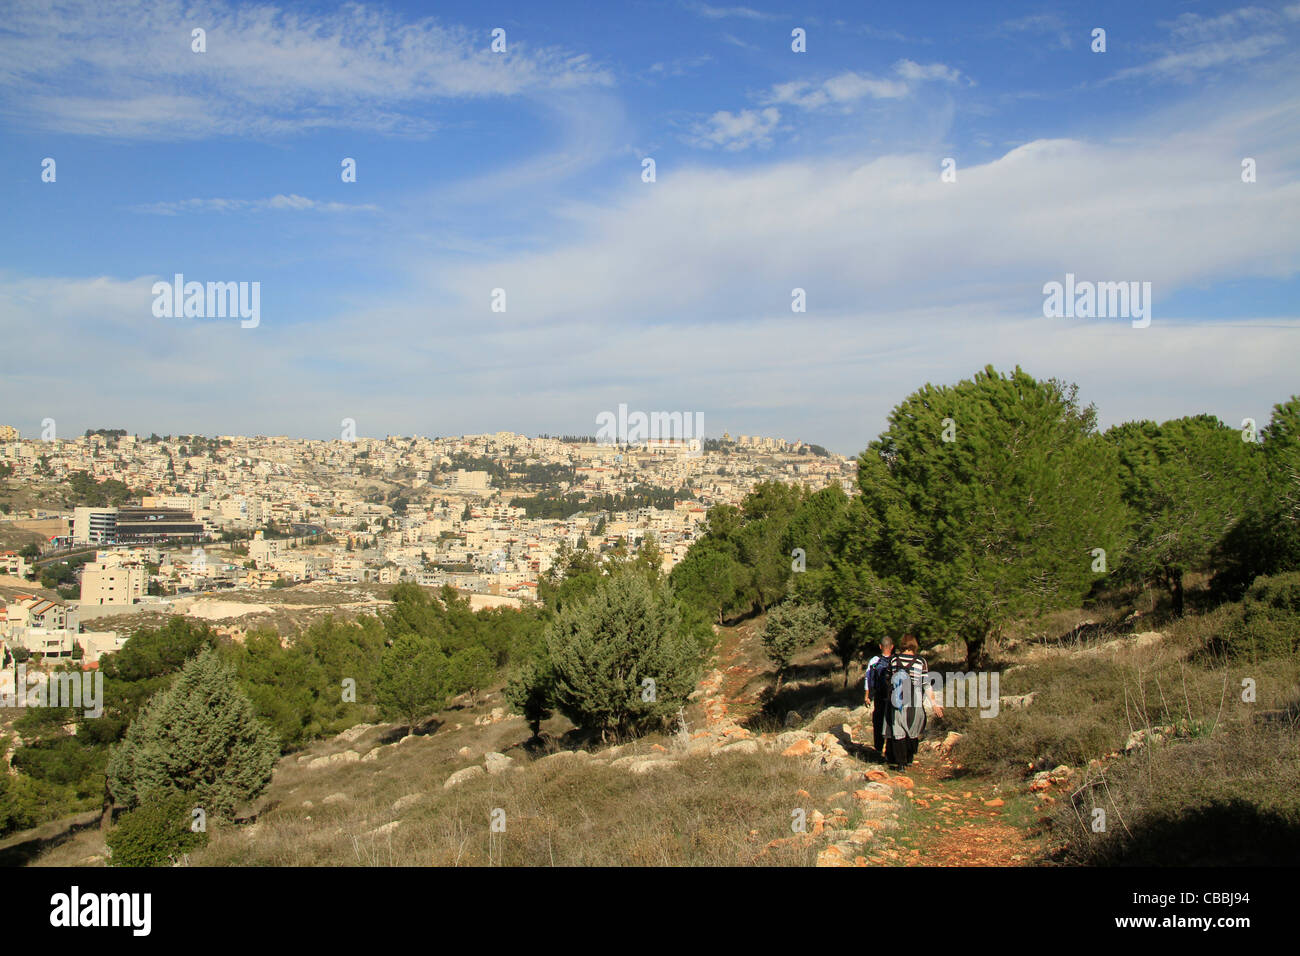 Israel, Lower Galilee, the Gospel Trail on Mount Precipice, Nazareth is in the background Stock Photo